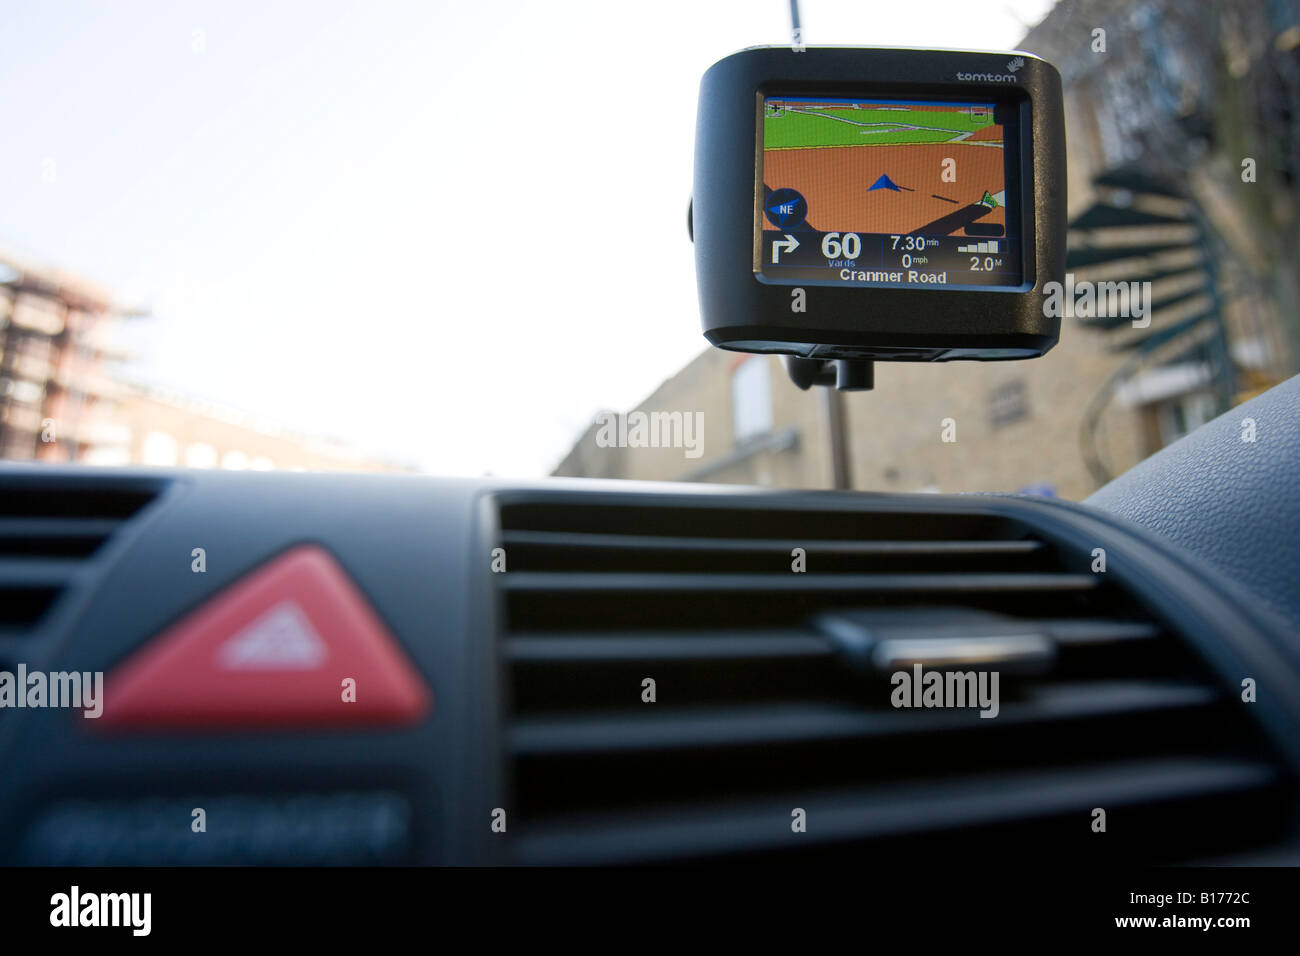 Tomtom GPS satellite navigation device in use in a car Stock